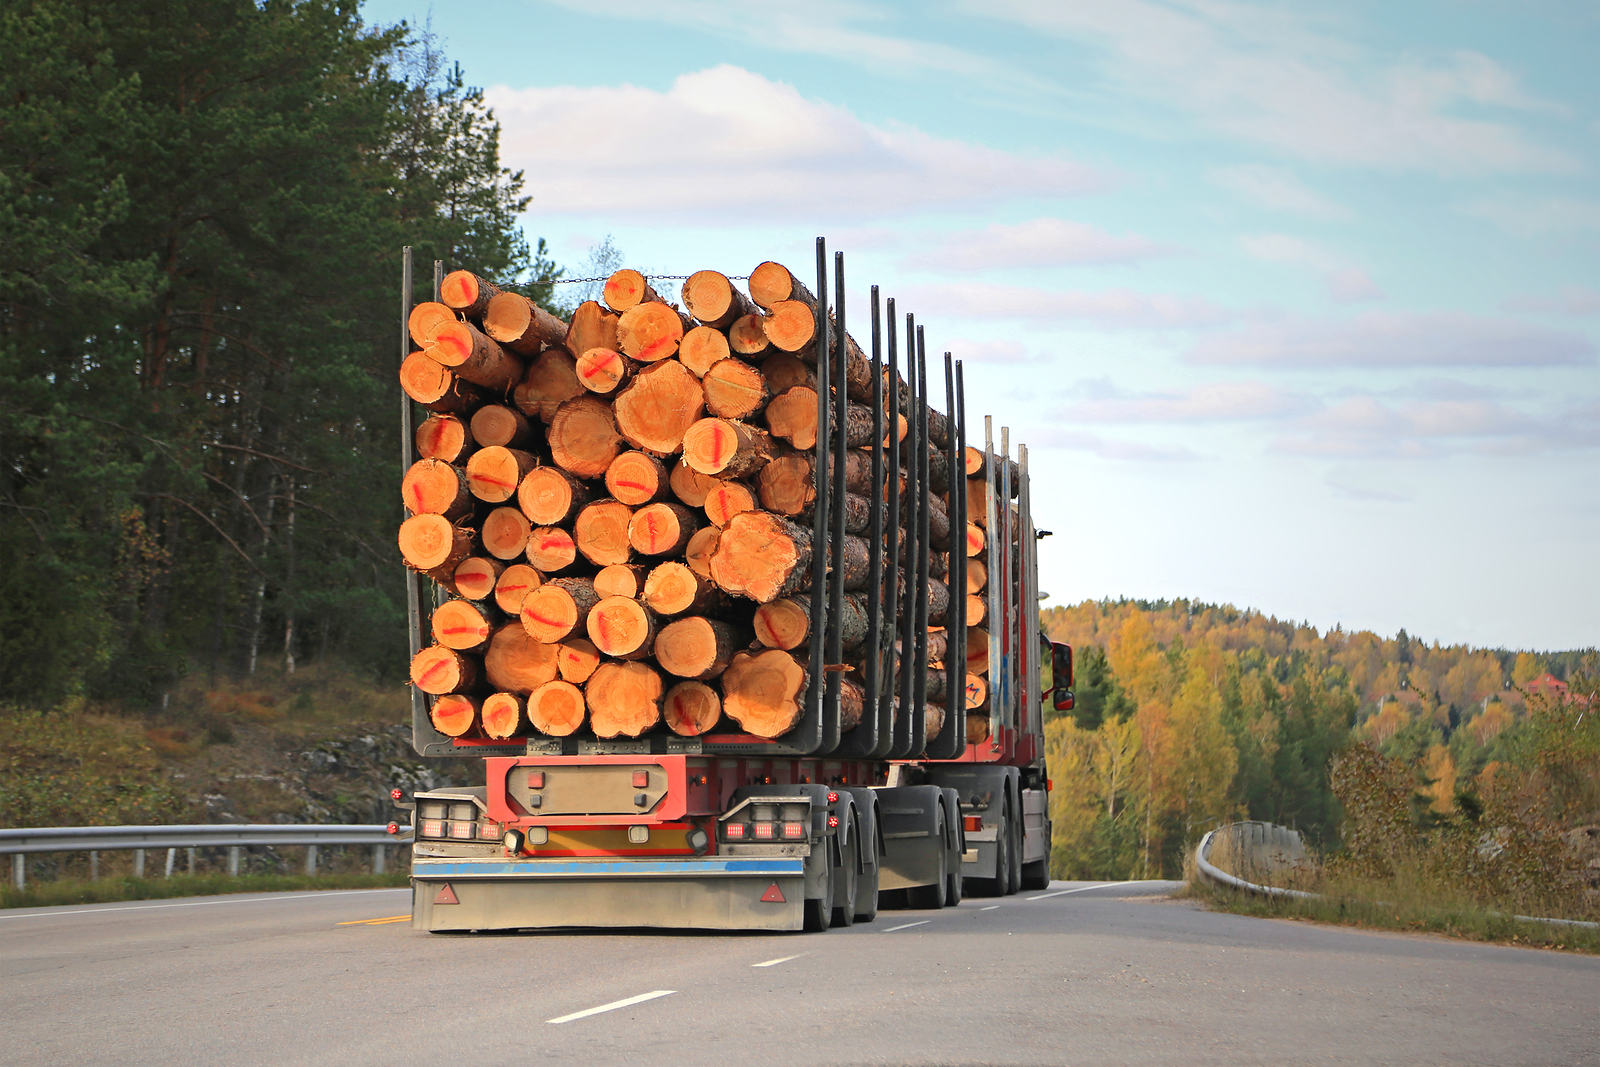 Many Truck Accidents Are Caused By Unsecured Loads